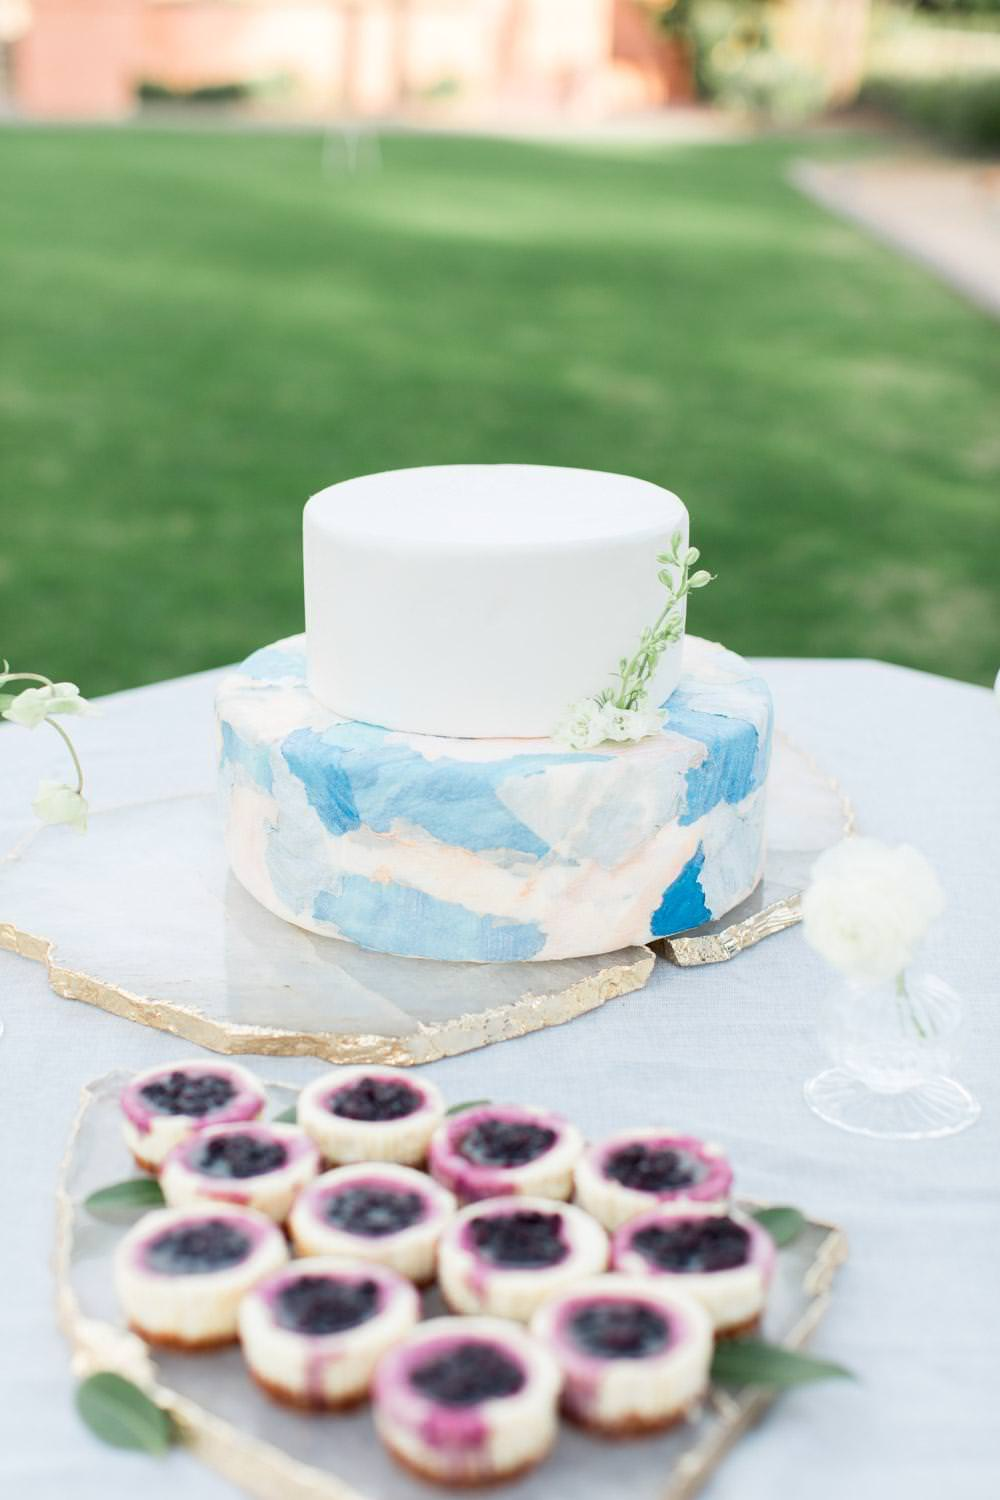 Rancho Valencia Wedding Photography by Cavin Elizabeth, wedding cake with white and blue